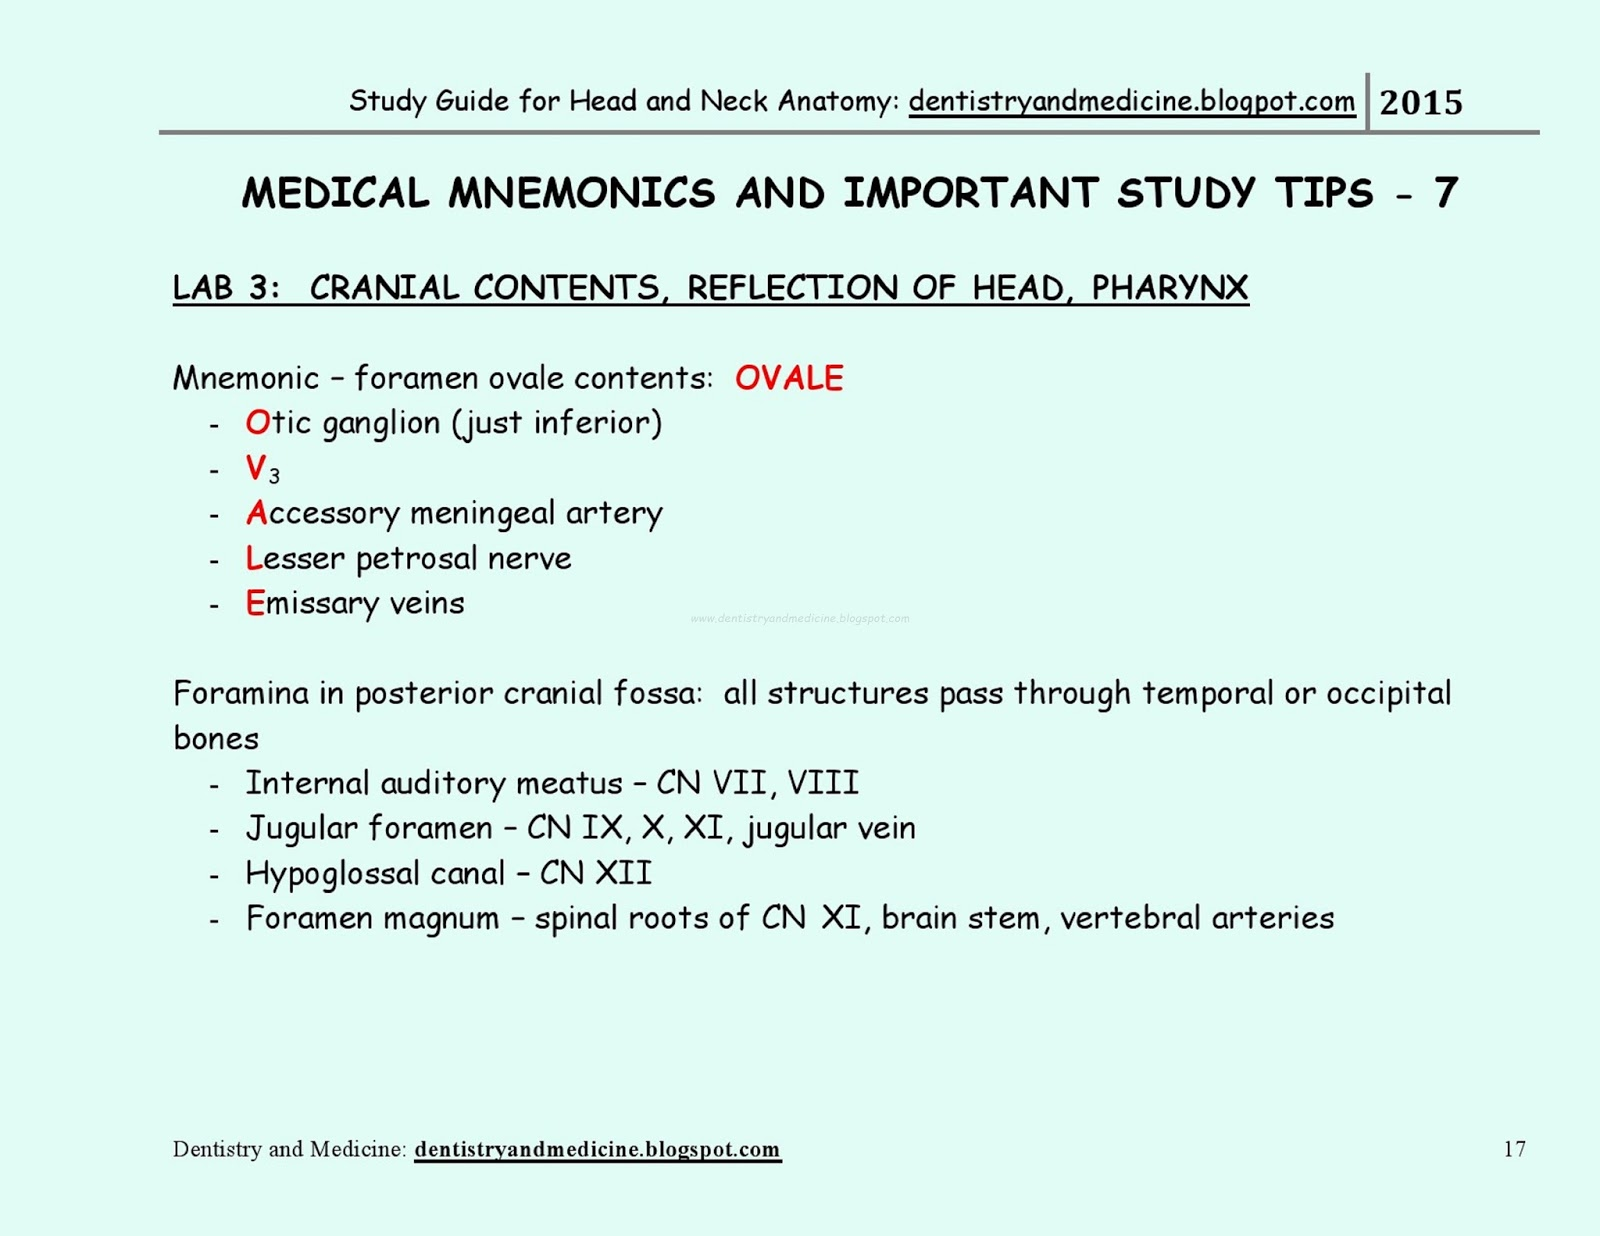 STUDY GUIDE FOR HEAD AND NECK ANATOMY - MEDICAL MNEMONICS -CRANIAL ...